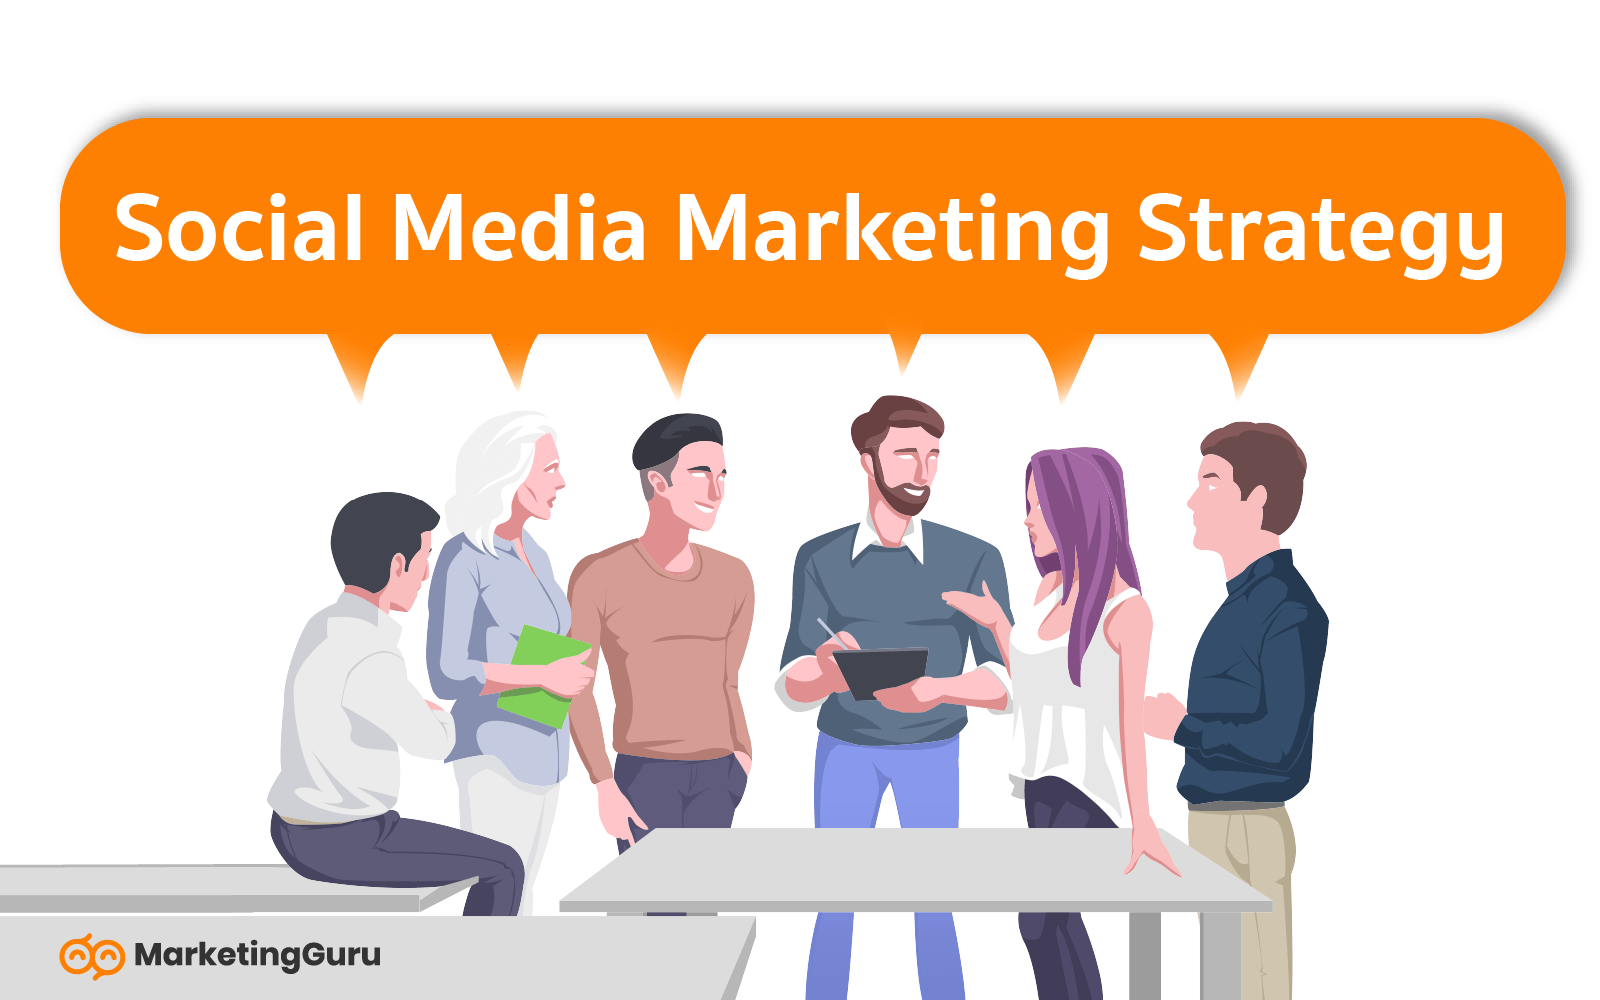 Social Media Marketing Strategy: How To Execute It and Win Customers